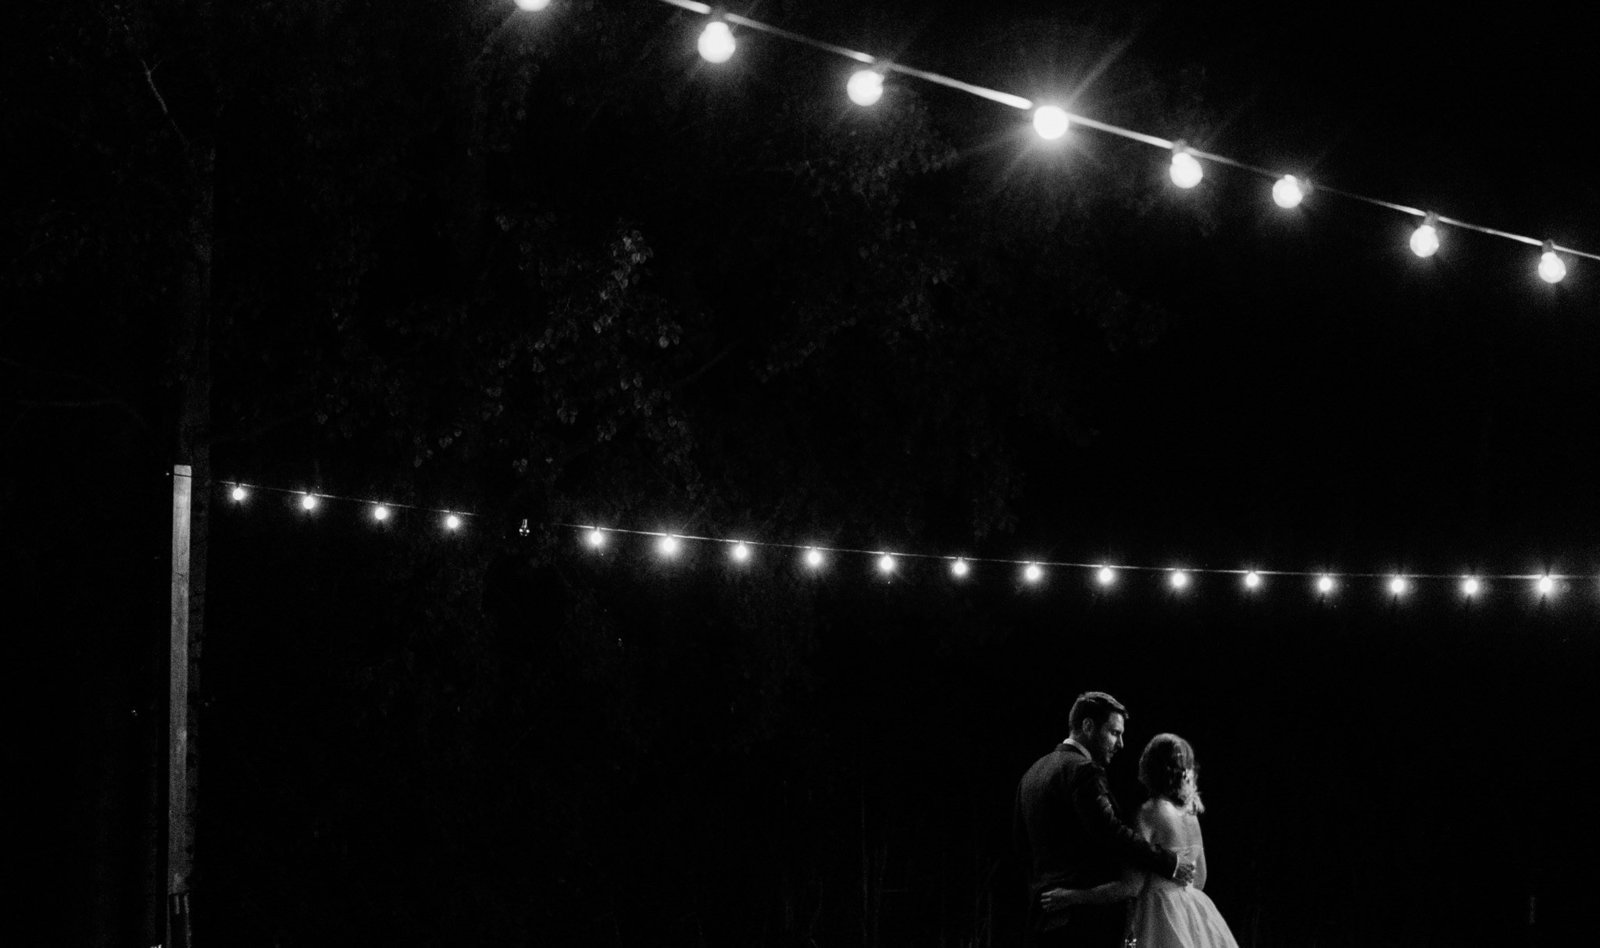 A bride and groom share a quiet moment together under bistro lights after their Leavenworth Washington elopement